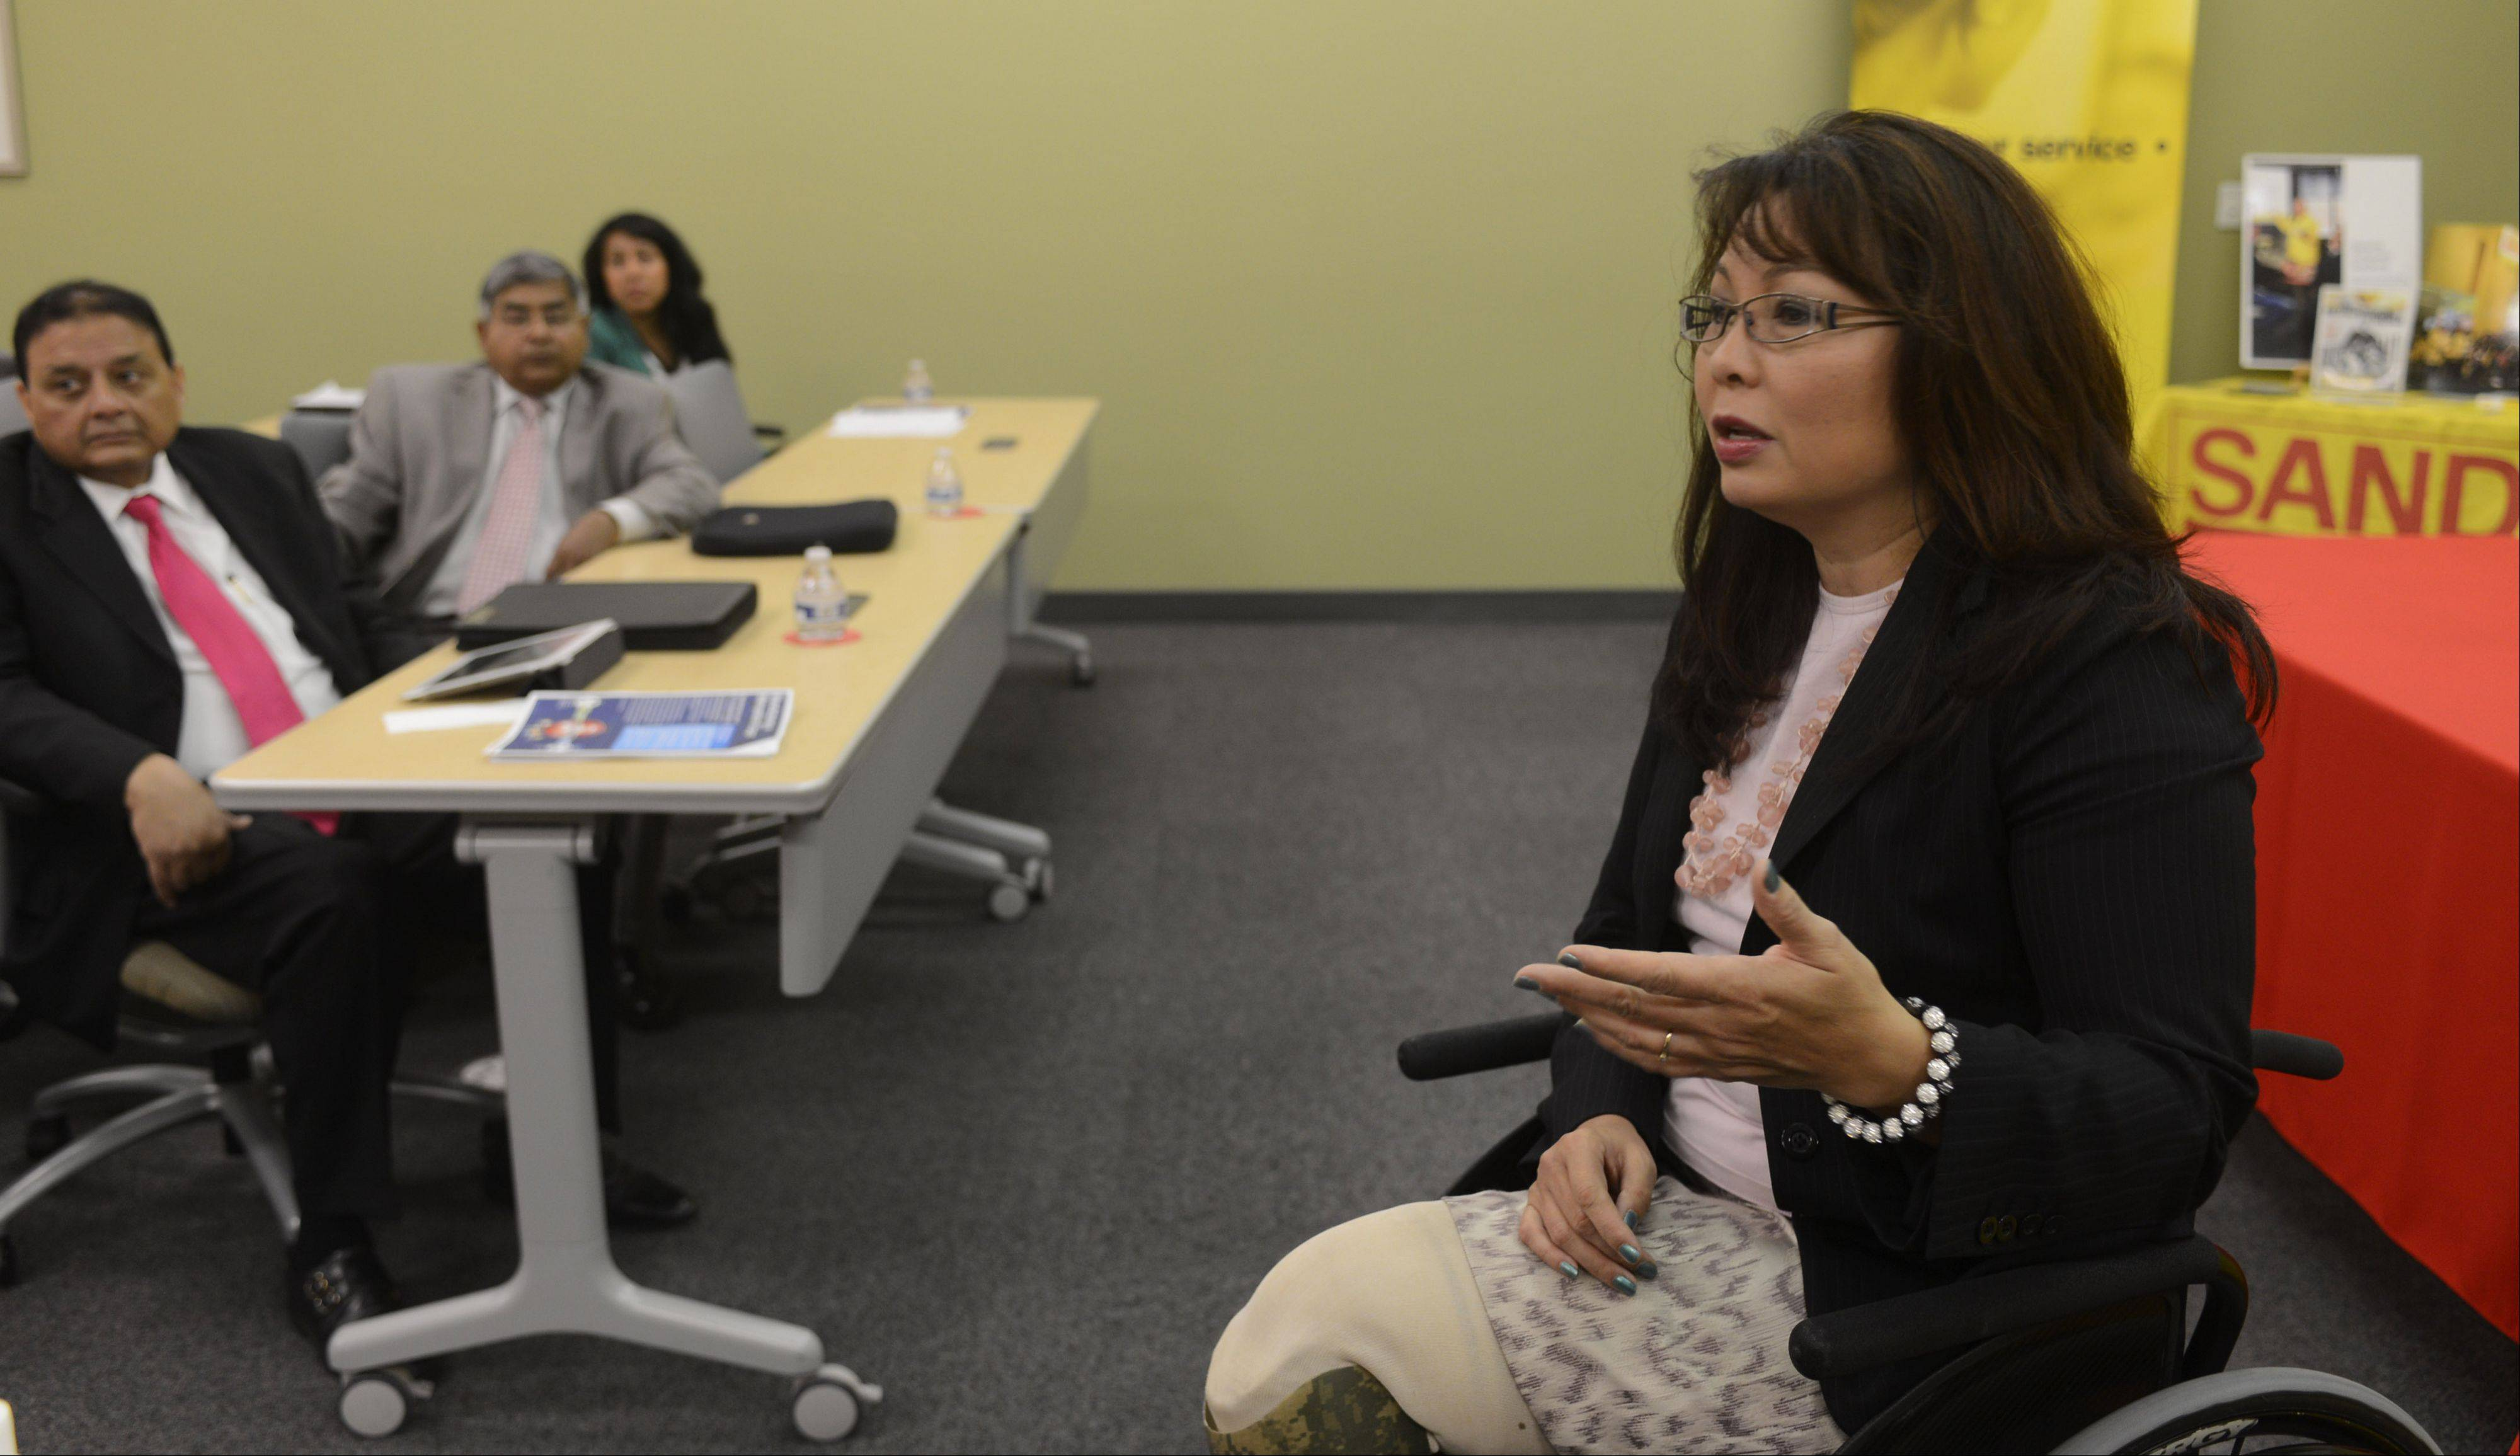 U.S. Rep. Tammy Duckworth, a Hoffman Estates Democrat, attends a discussion on manufacturing and its importance to the suburban region Friday at Sandvik Coromant Co. in Schaumburg.